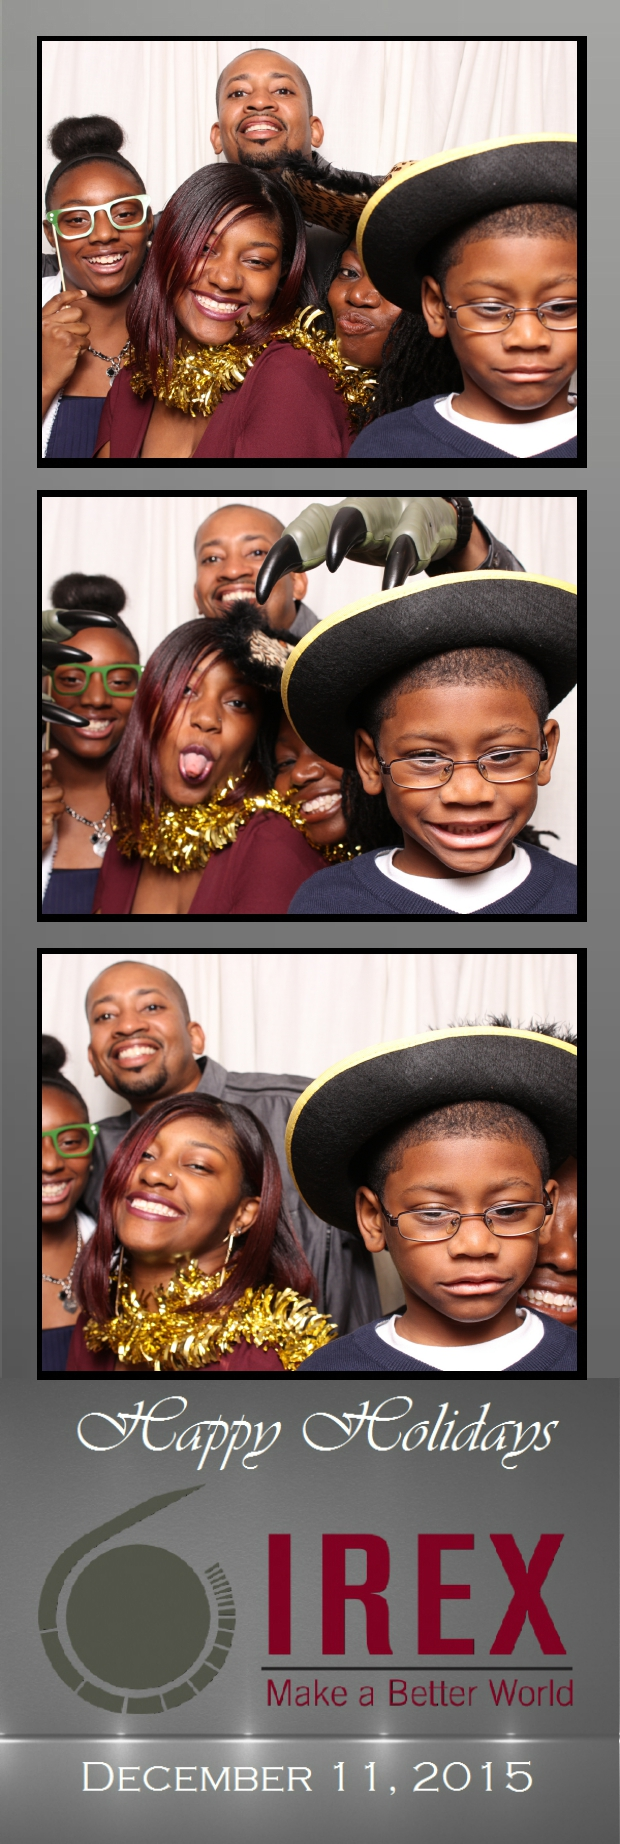 Guest House Events Photo Booth Strips IREX (36).jpg